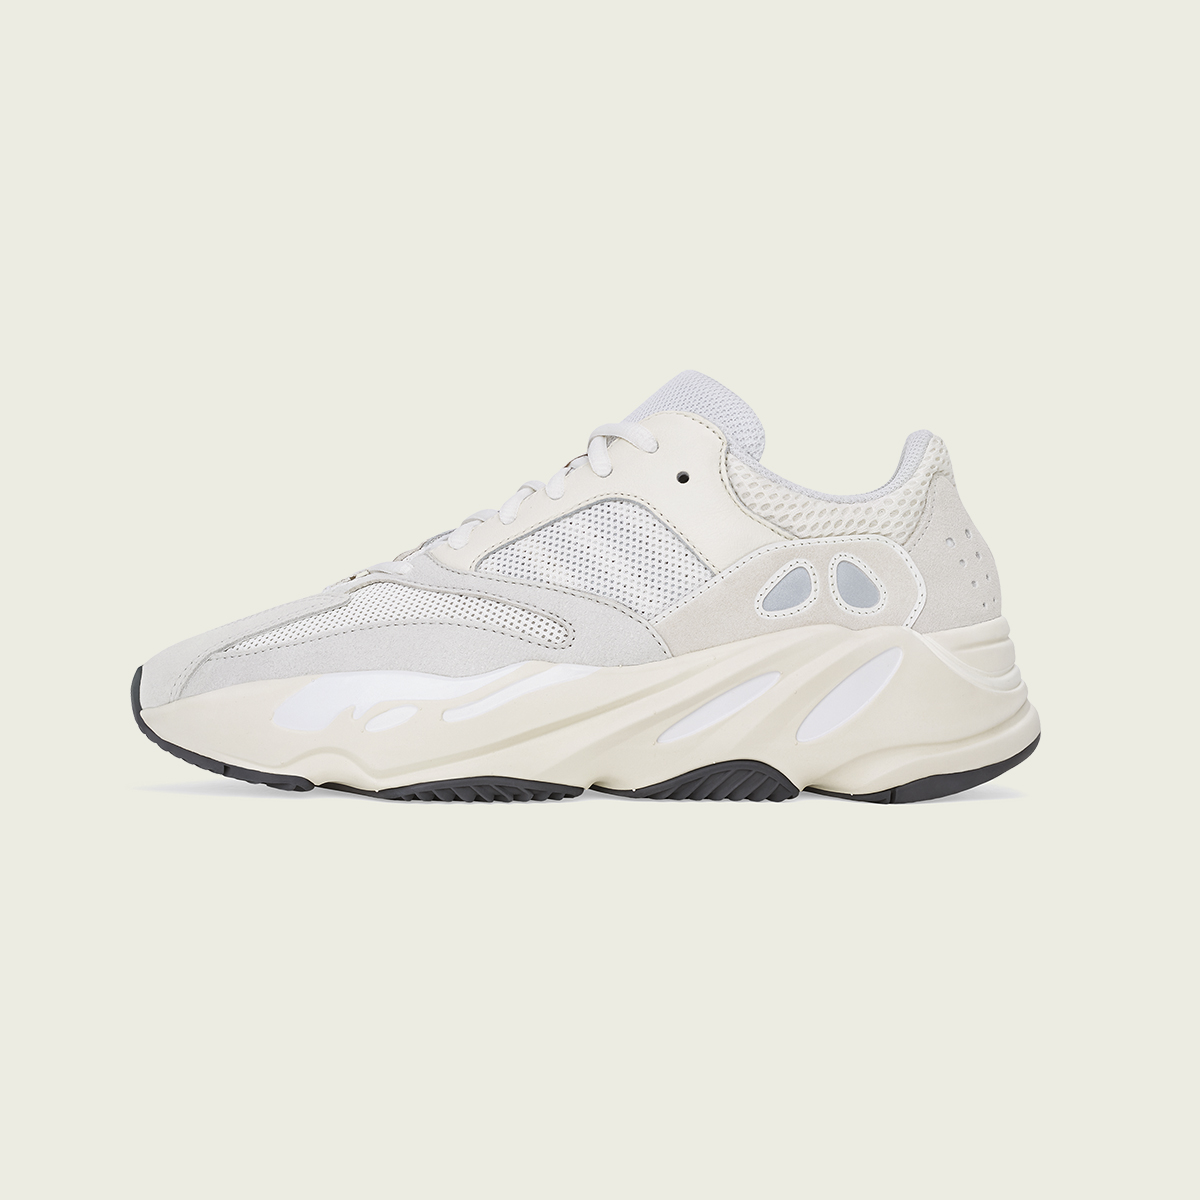 best service bc080 dff37 DONE: YEEZY BOOST 700 V1 /// ANALOG /// #EG7596 (300,00€) - OVERKILL ...